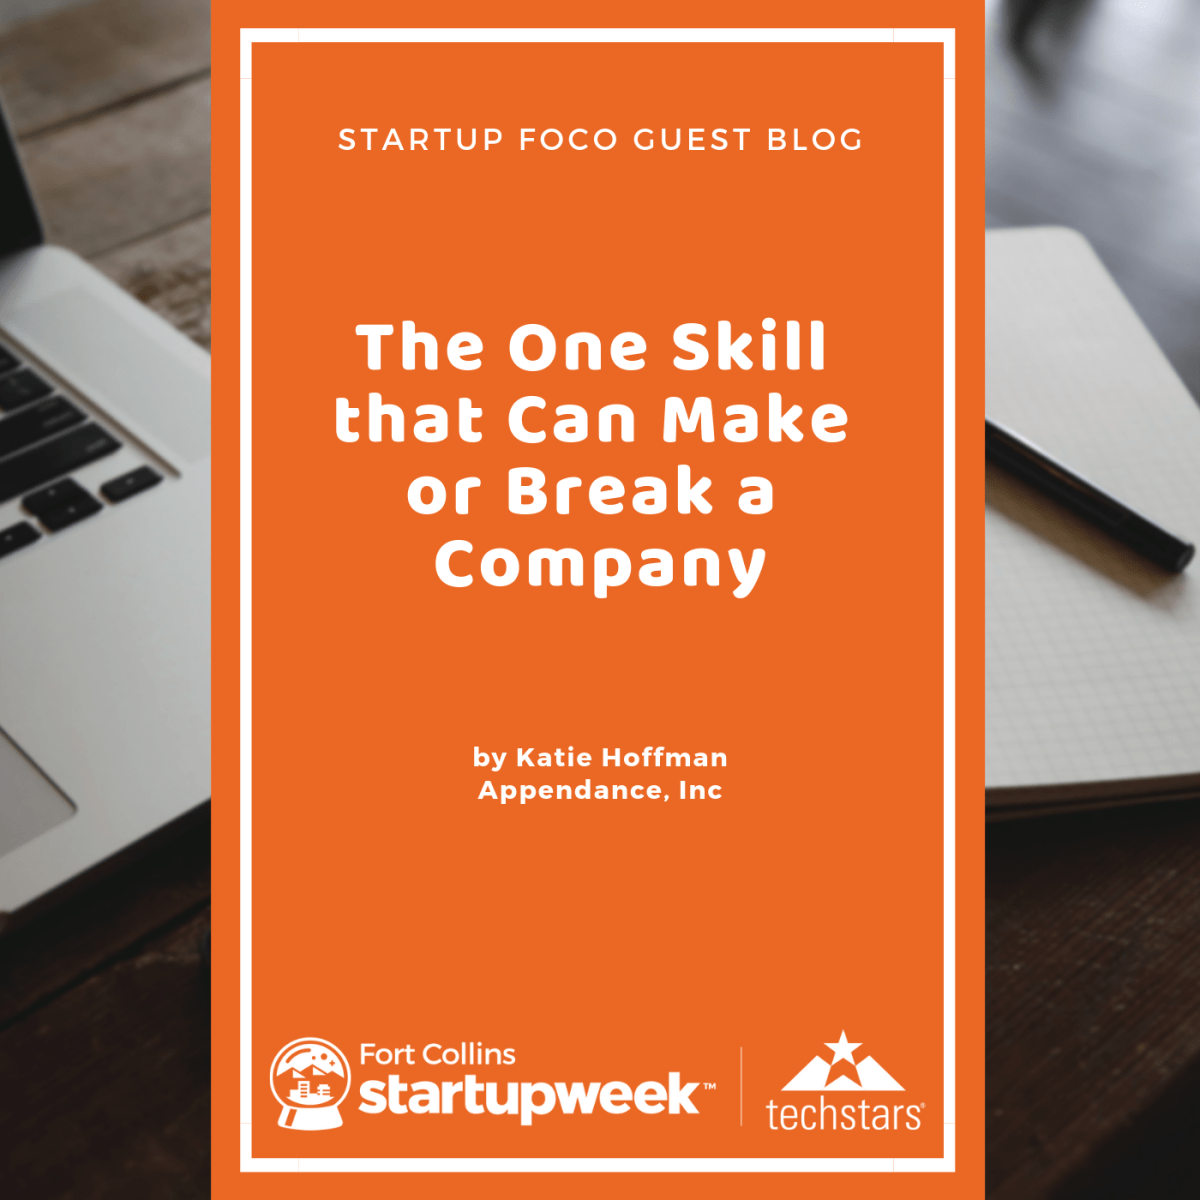 The One Skill that Can Make or Break a Company